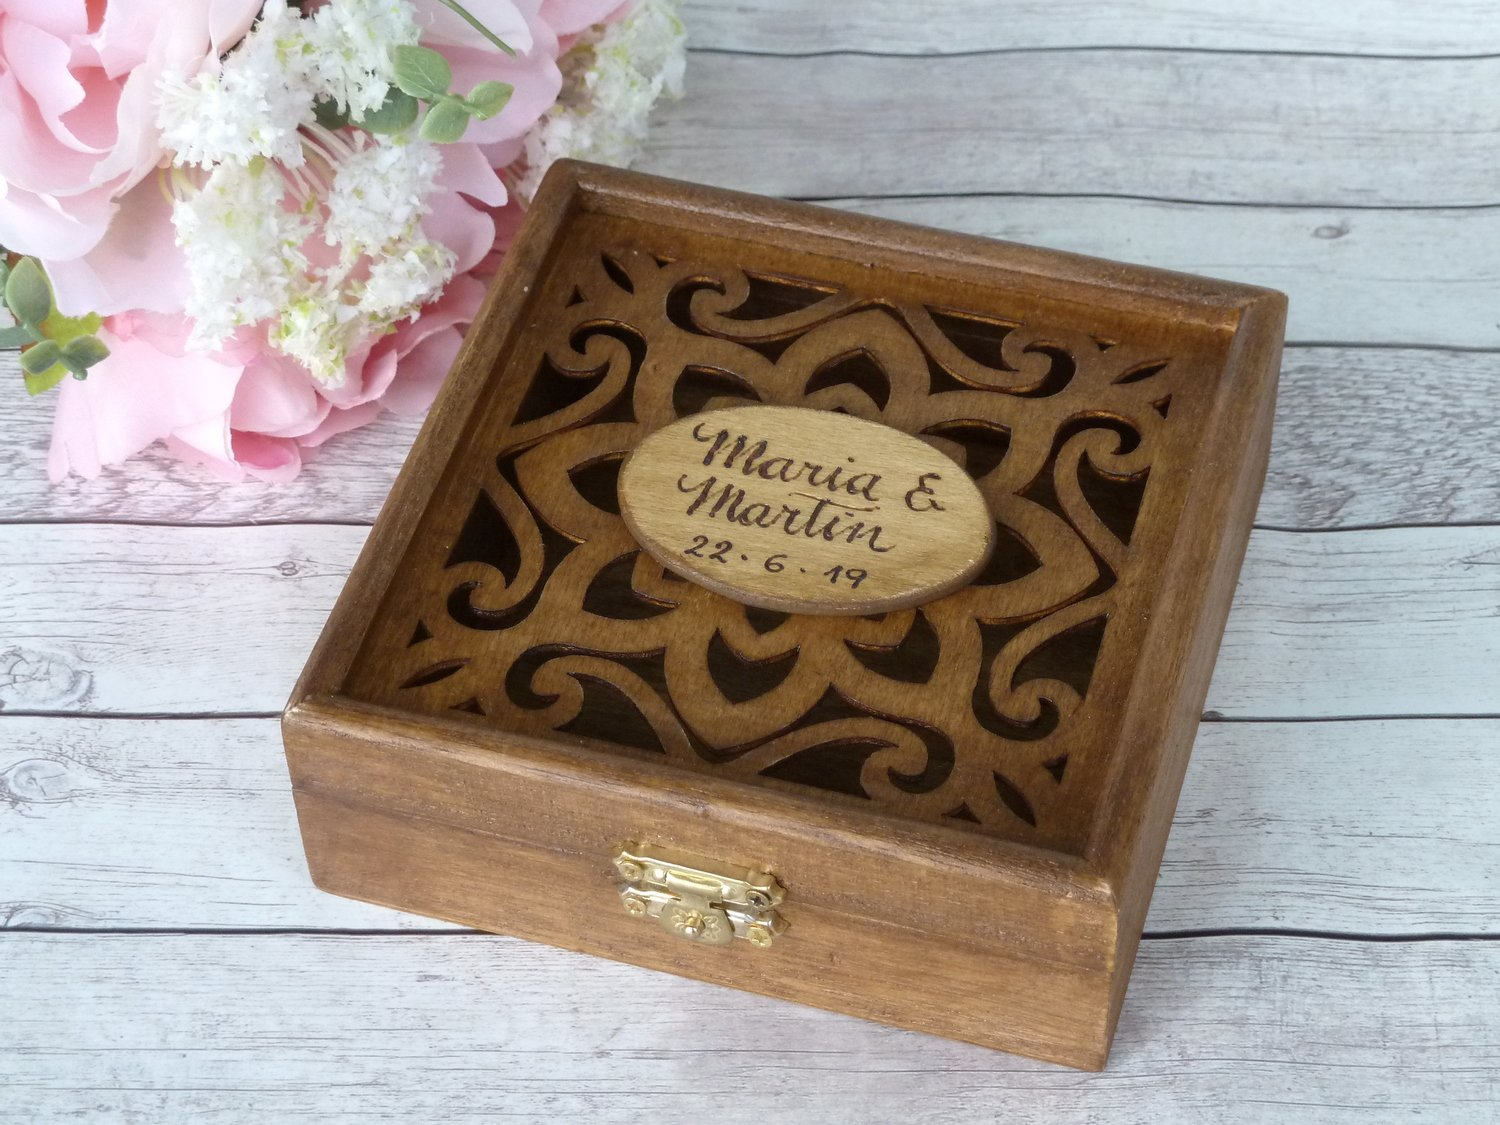 Wedding Arras Coins Box. Personalized, Engraved Ducat Box. Wedding Gift